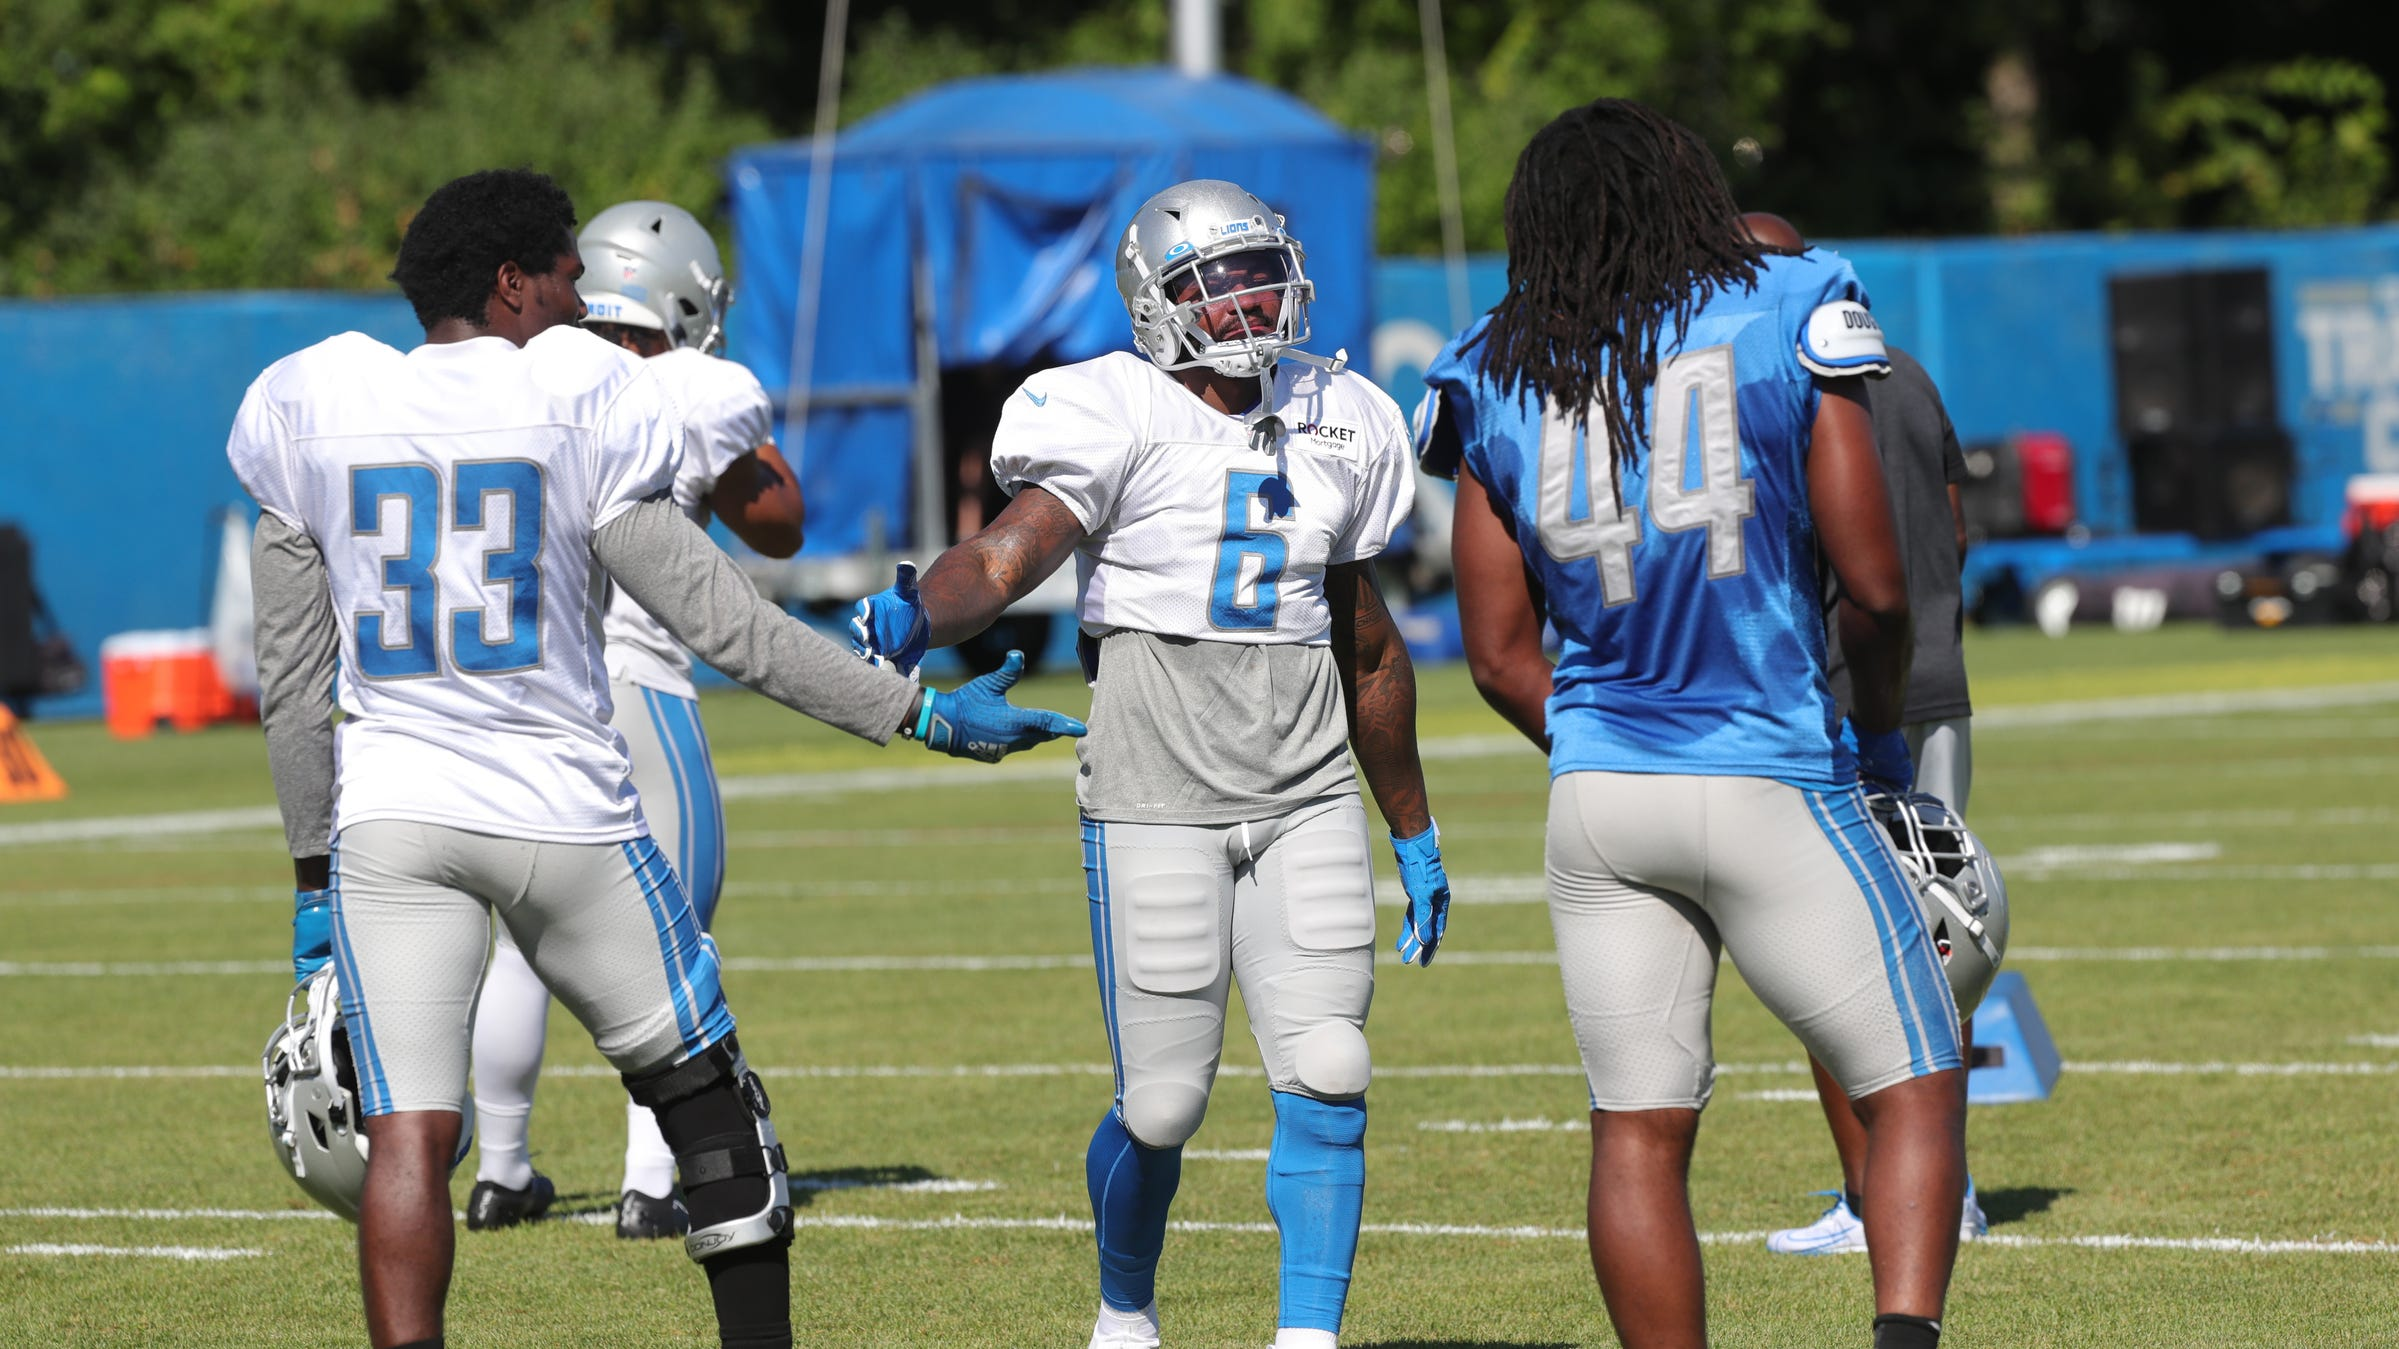 Running backs Kerryon Johnson (33) and D'Andre Swift (6) talk with linebacker Jalen Reeves-Maybin during Detroit Lions training camp Thursday, August 20, 2020 in Allen Park.